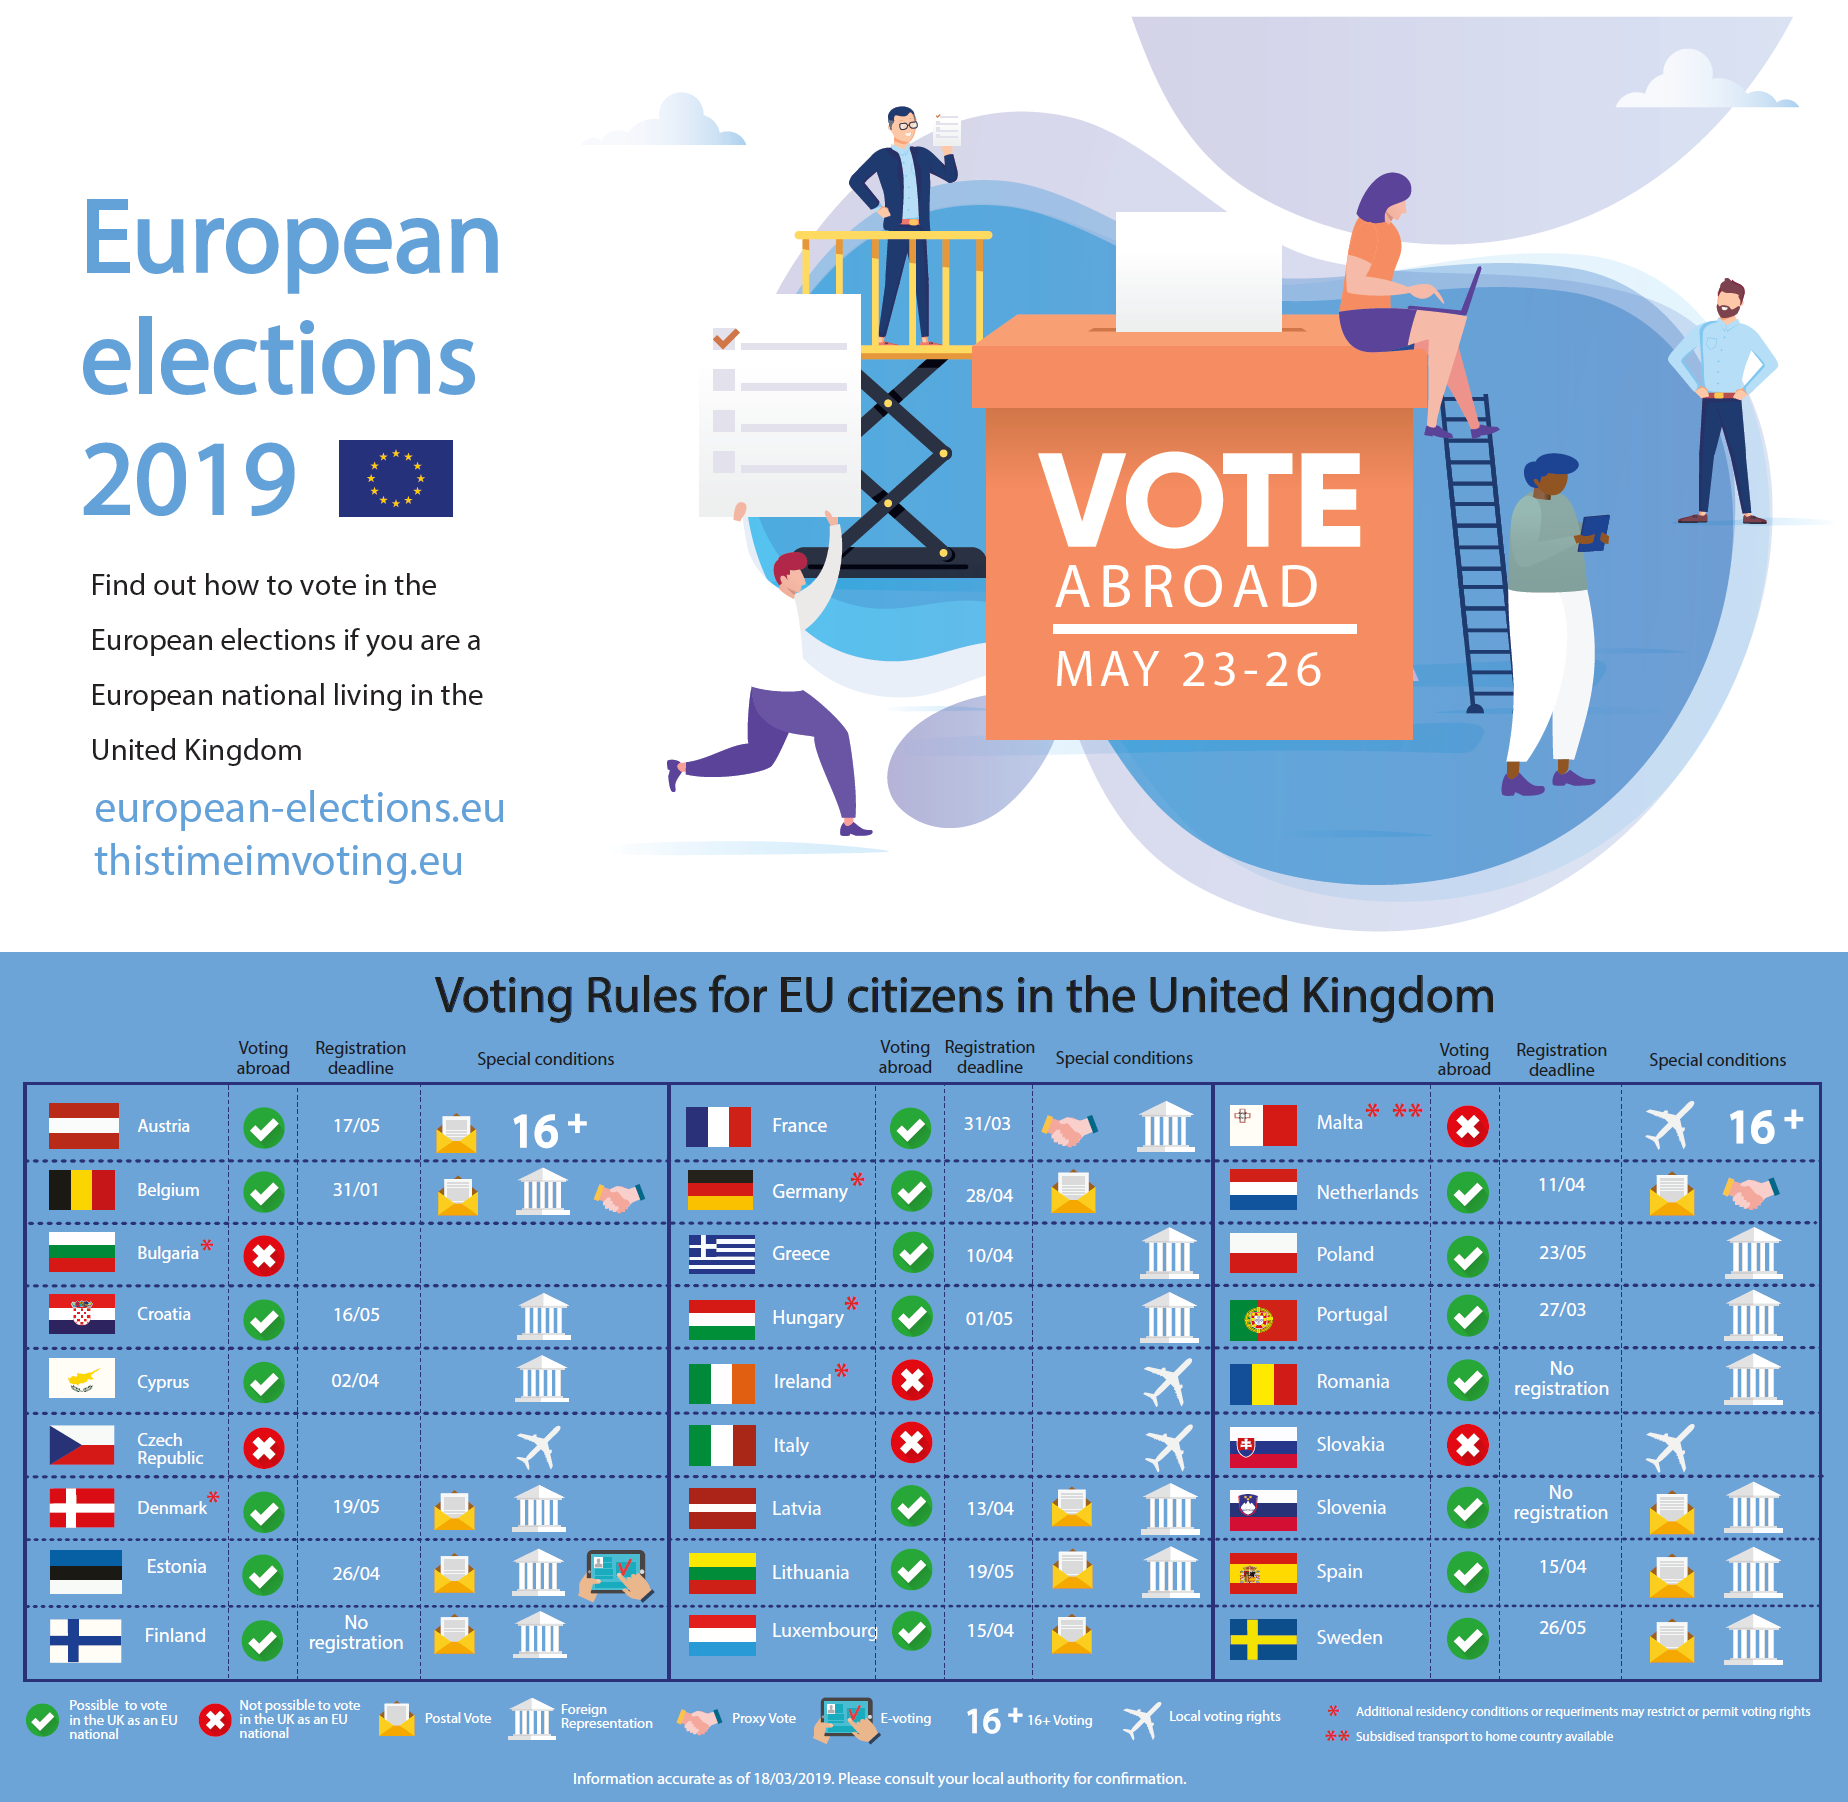 Voting Rules for EU citizens in the UK